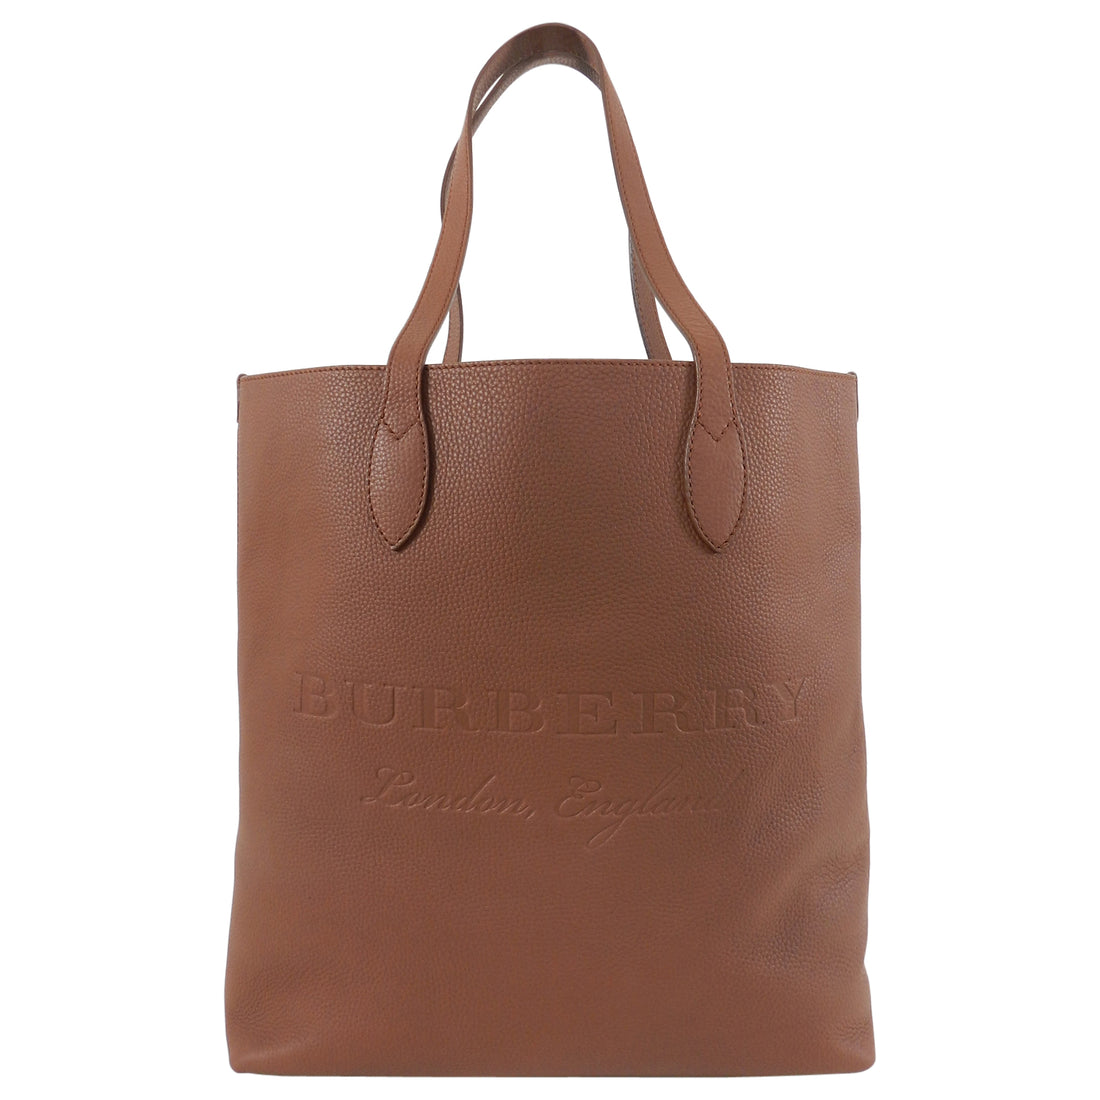 Burberry Remington Chestnut Brown Large Leather Logo Tote